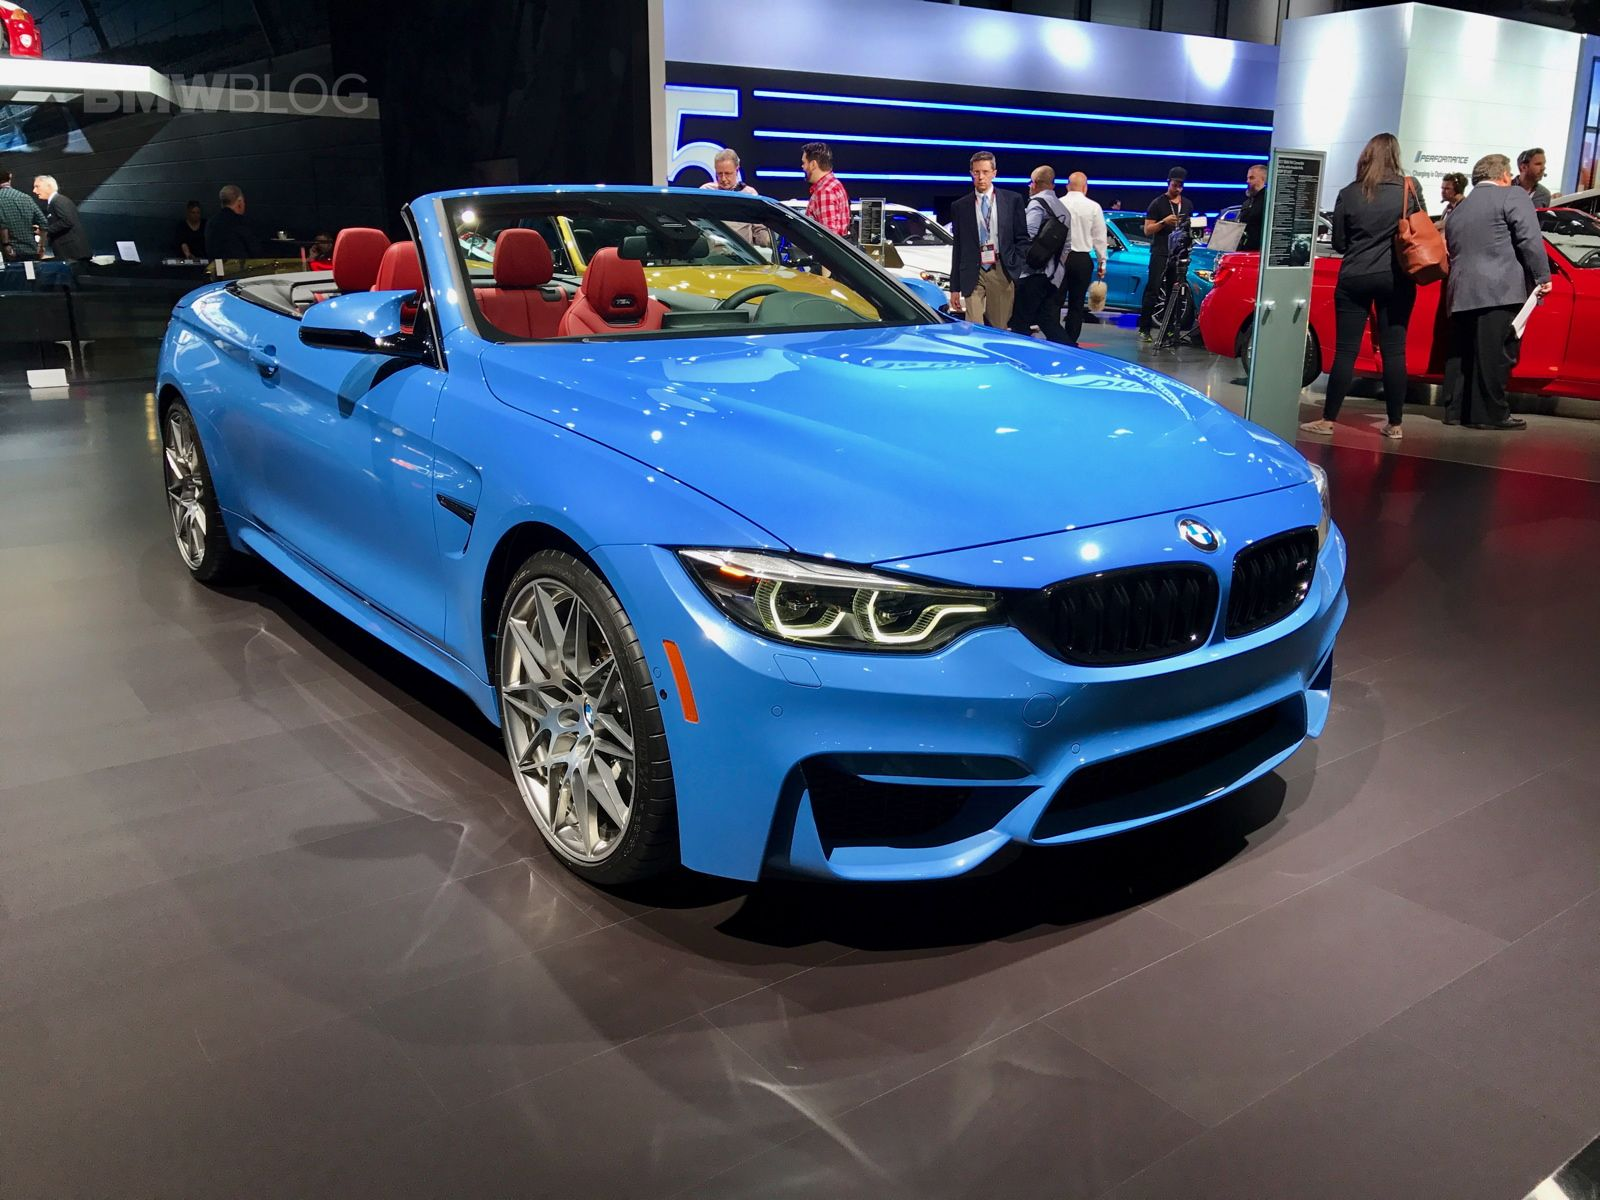 Top Gear Reviews Bmw M4 Competition Package Convertible Bmw M4 Bmw Bmw M4 Coupe